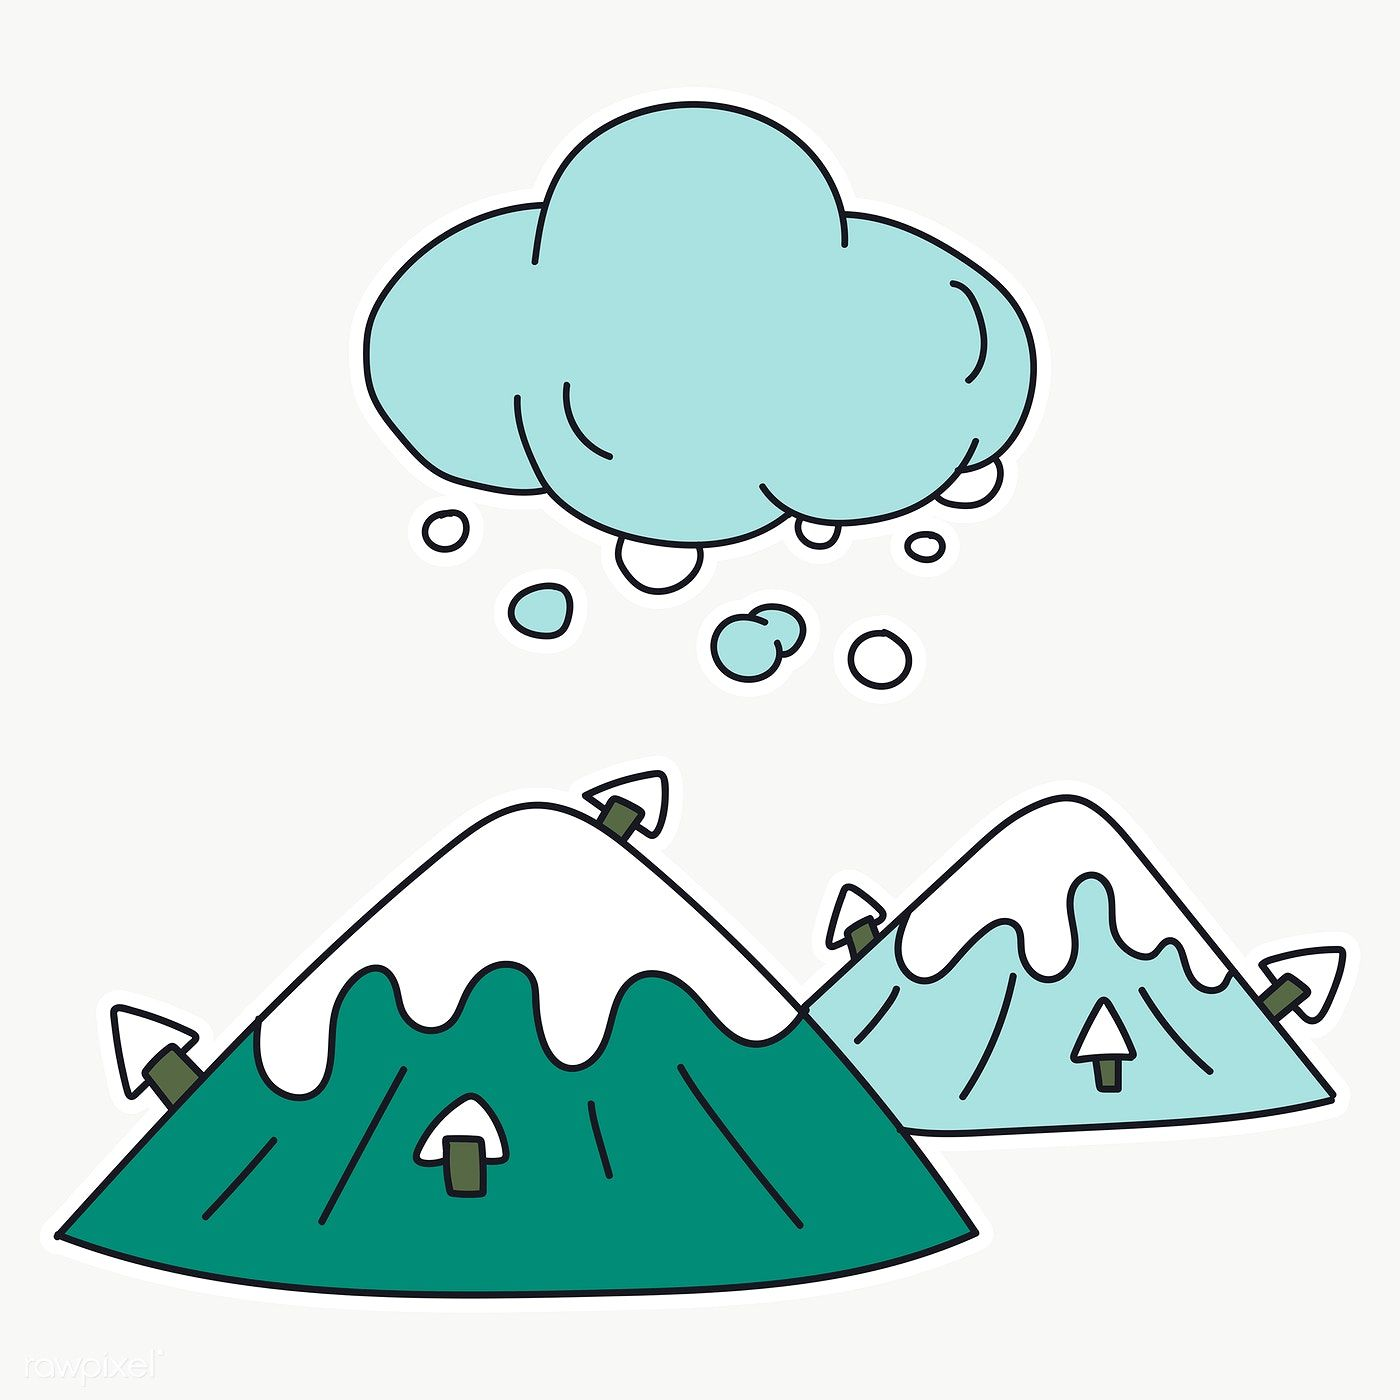 Download Premium Png Of Snowy Mountain Sticker Transparent Png 2033672 Transparent Stickers Cartoon Clouds Stickers